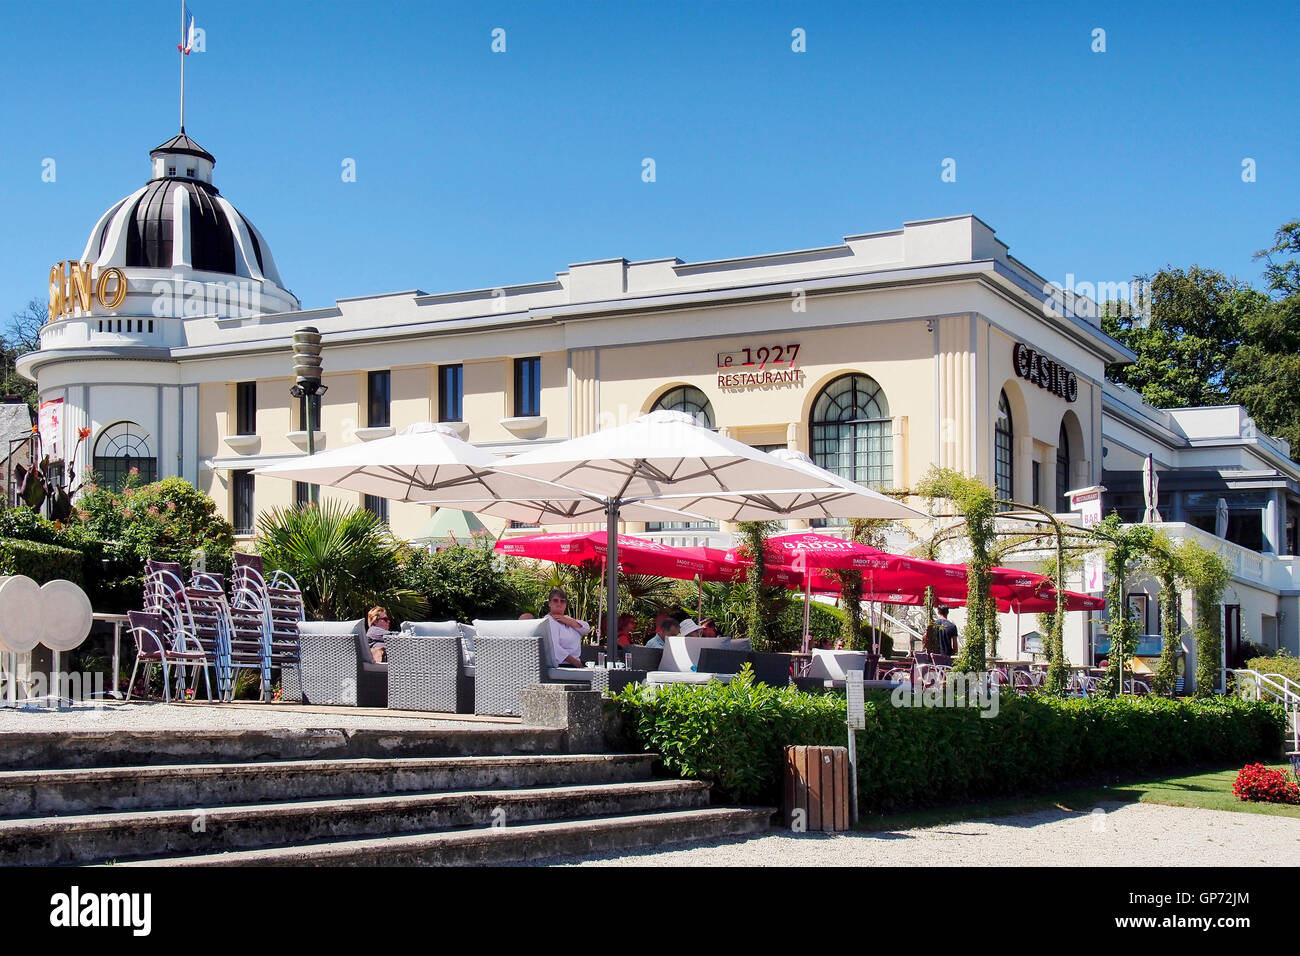 The Casino and Casino Gardens in Bagnoles de L'orne an old spa resort in Normandy, France late summer 2016. Stock Photo